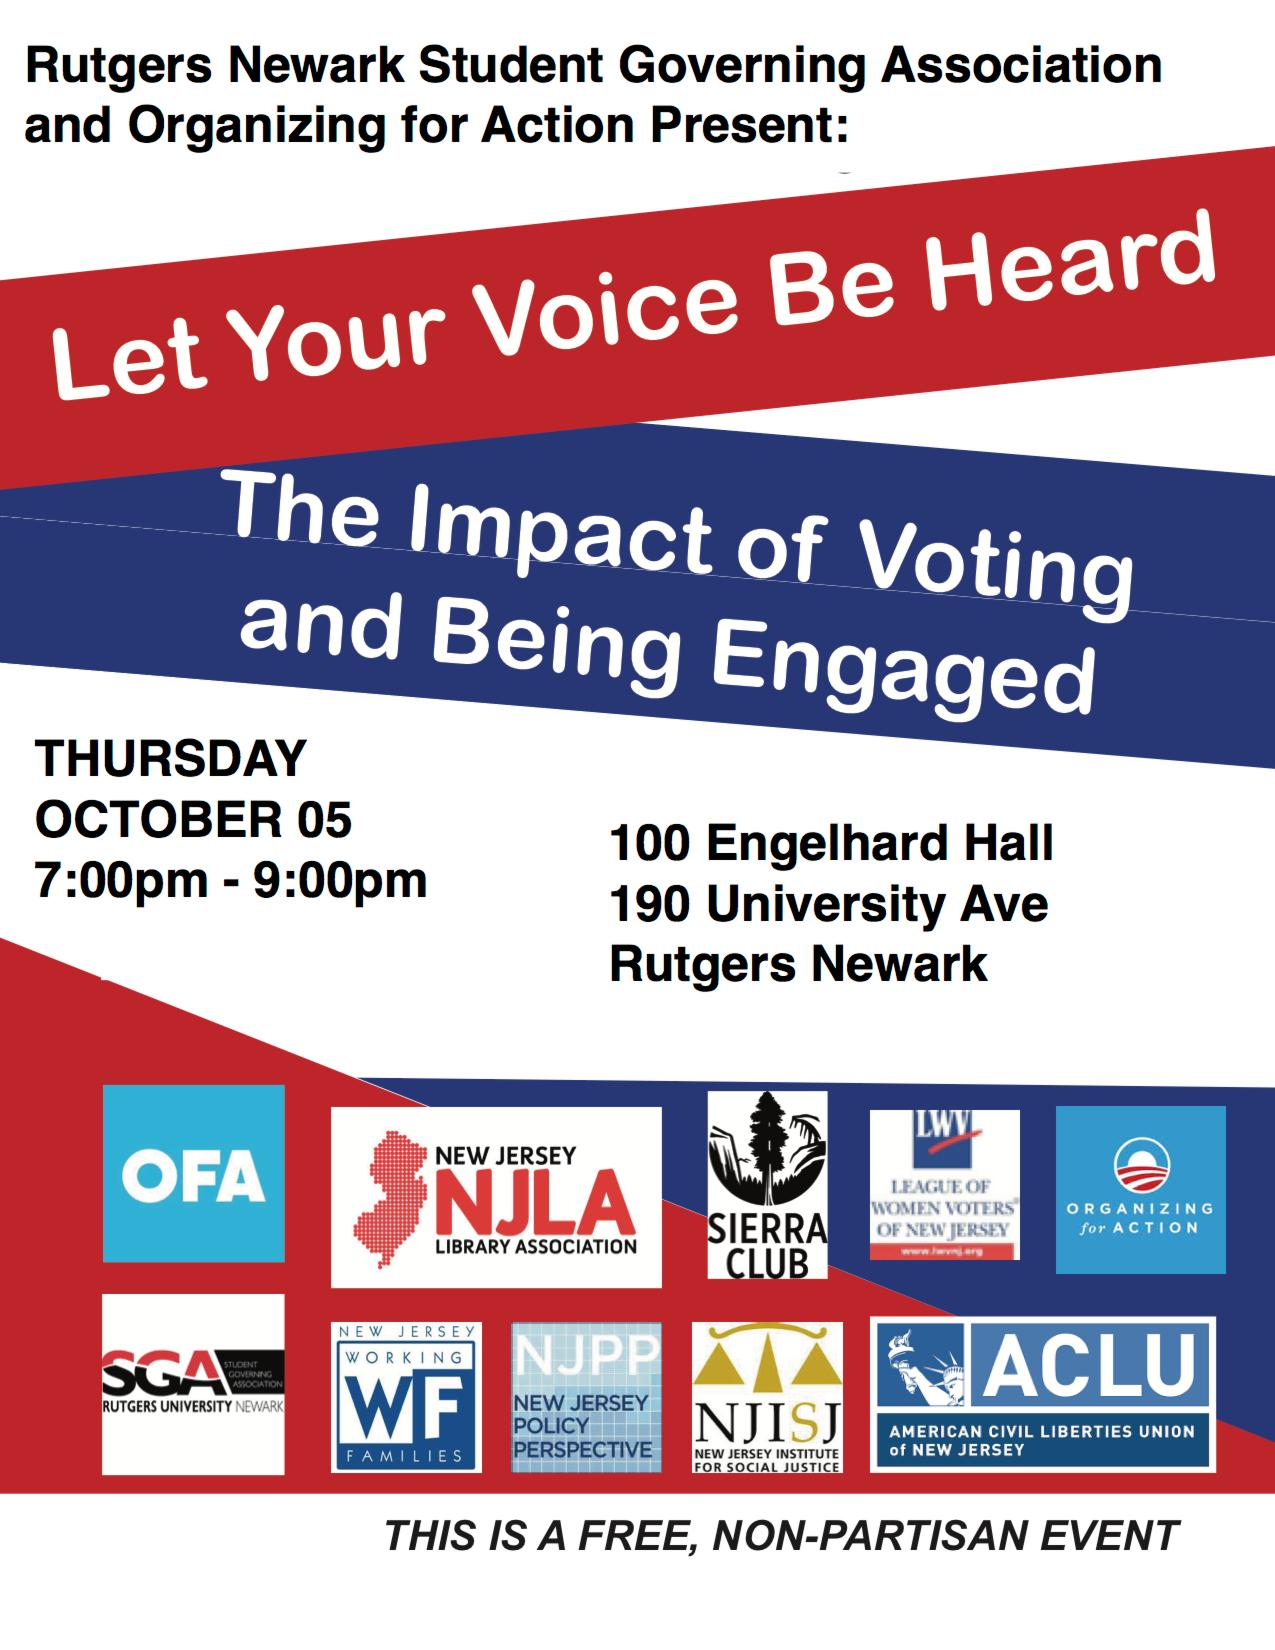 OFA_Fellows_Flyer_Oct_5_100_Engelhard_Hall_JPEG.jpg